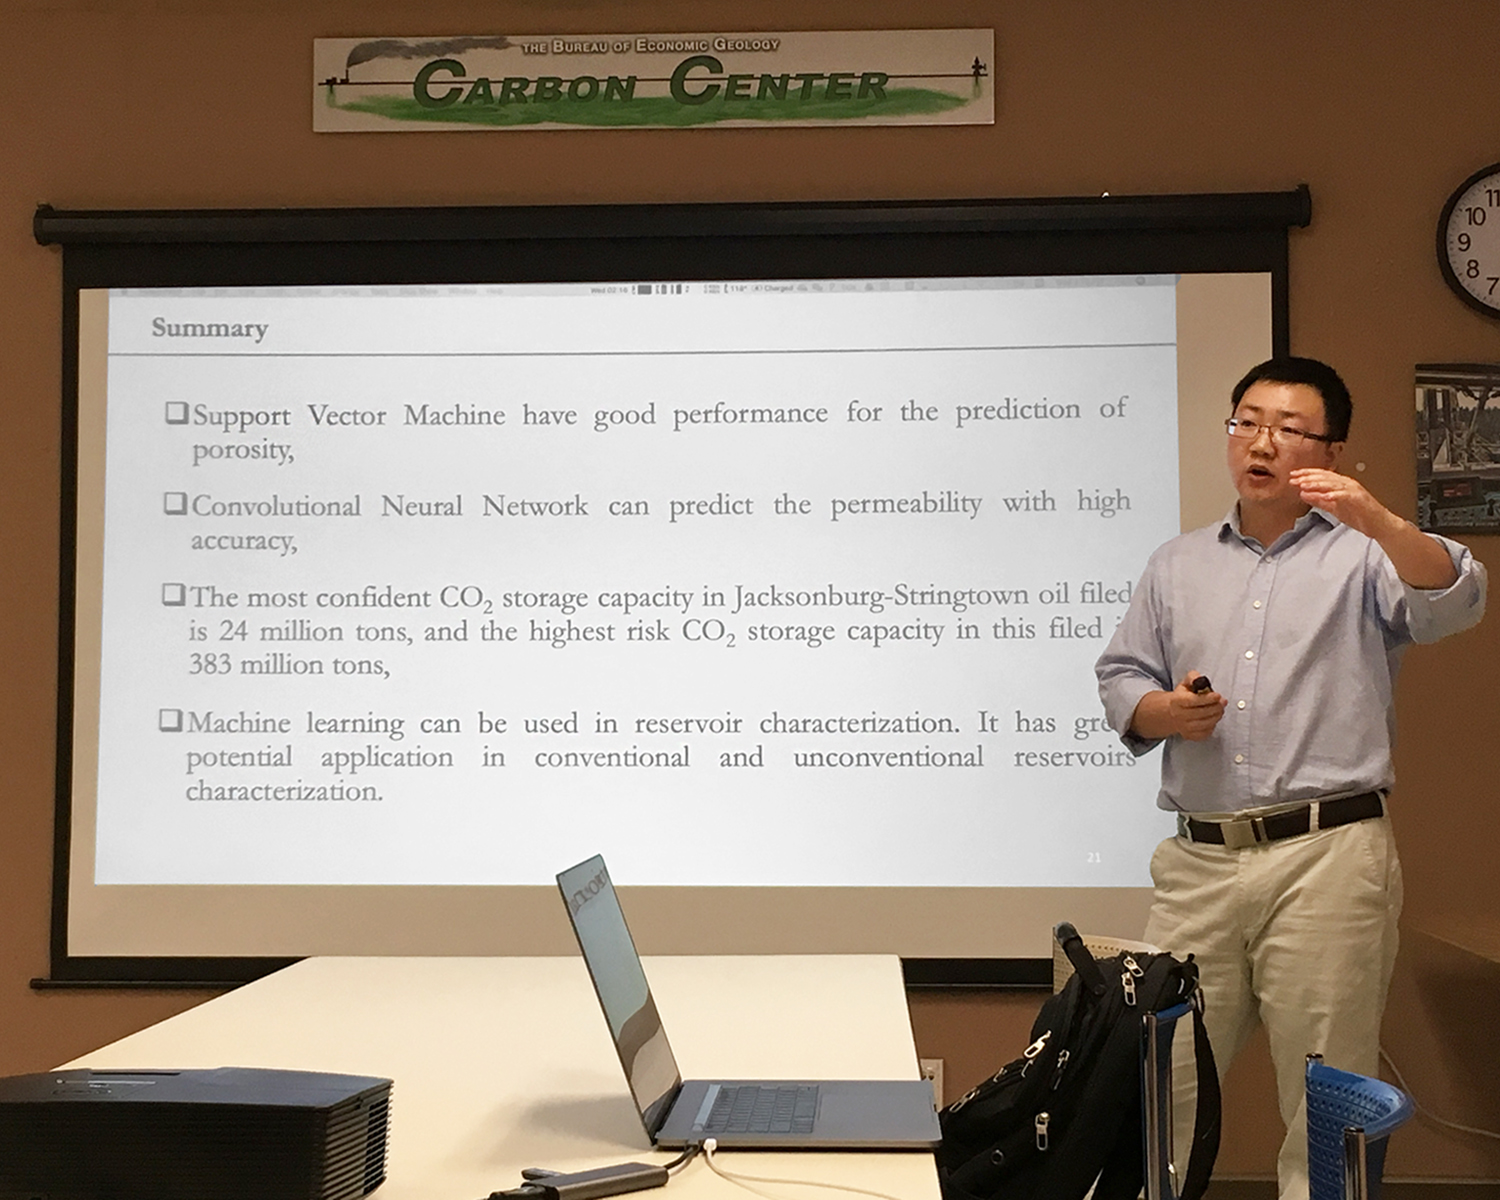 Zhi Zhong shows the summary slide of his presentation which says that machine learning methods of porosity and permeability have high accuracy and that machine learning can be used in unconventional and conventional reservoir characterization with success.